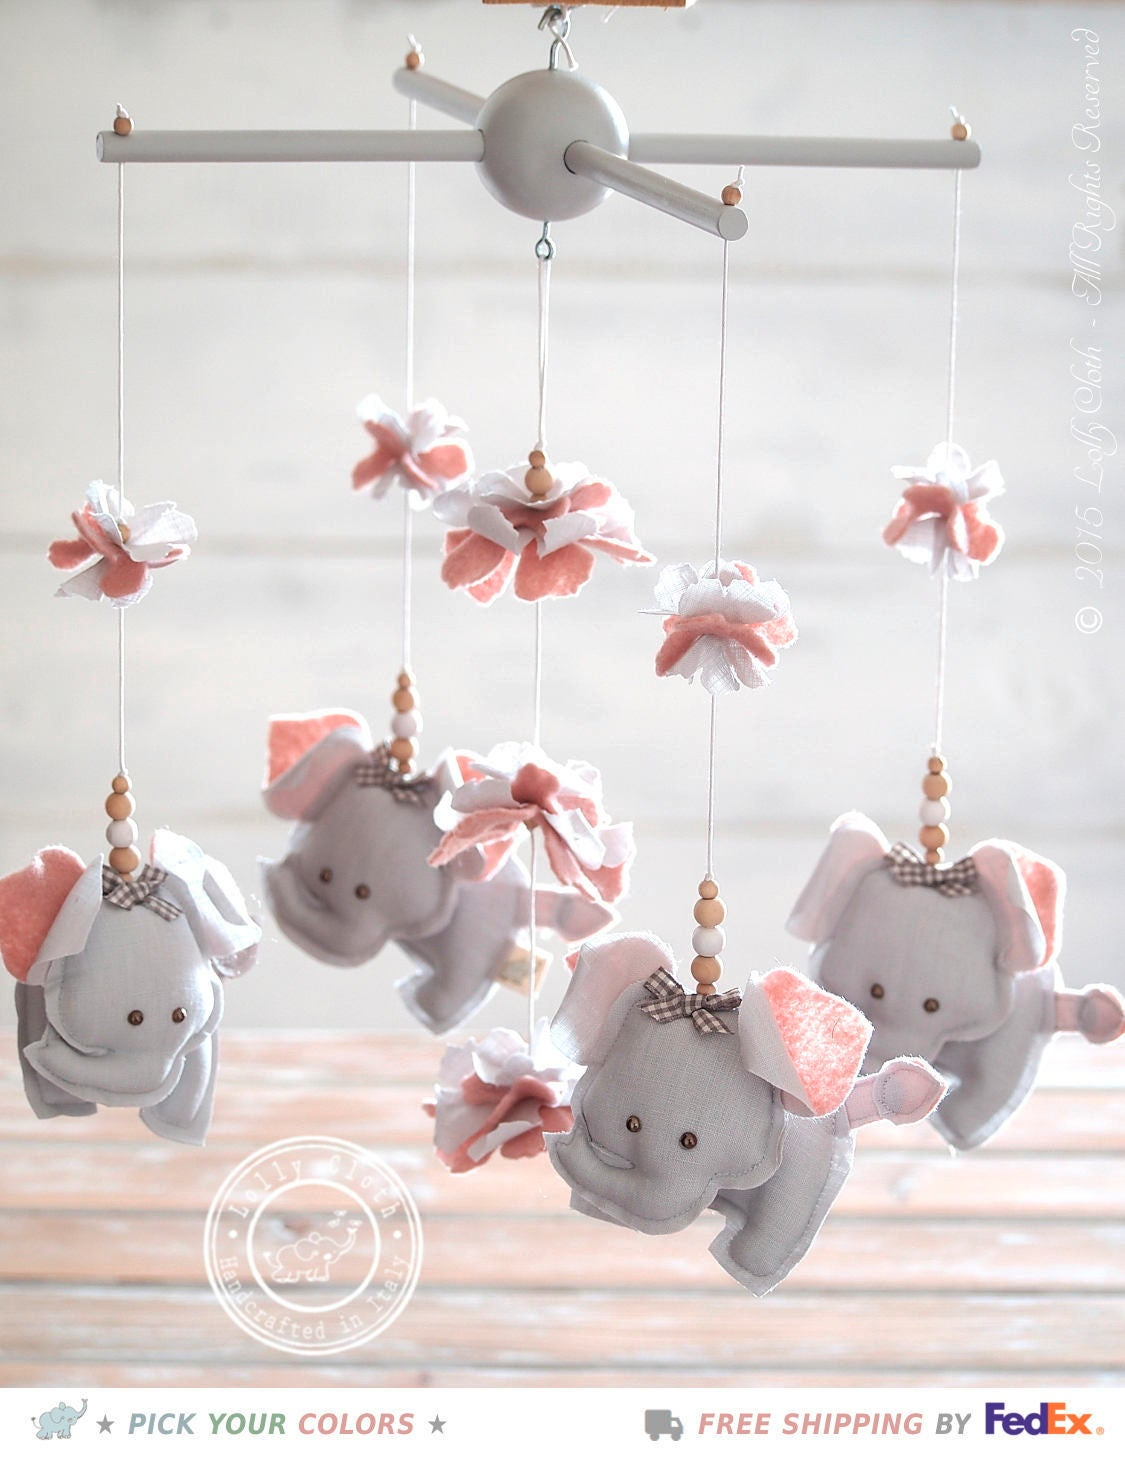 Grey Amp Pink Elephant Nursery Mobile Girlgift For Girlelephant